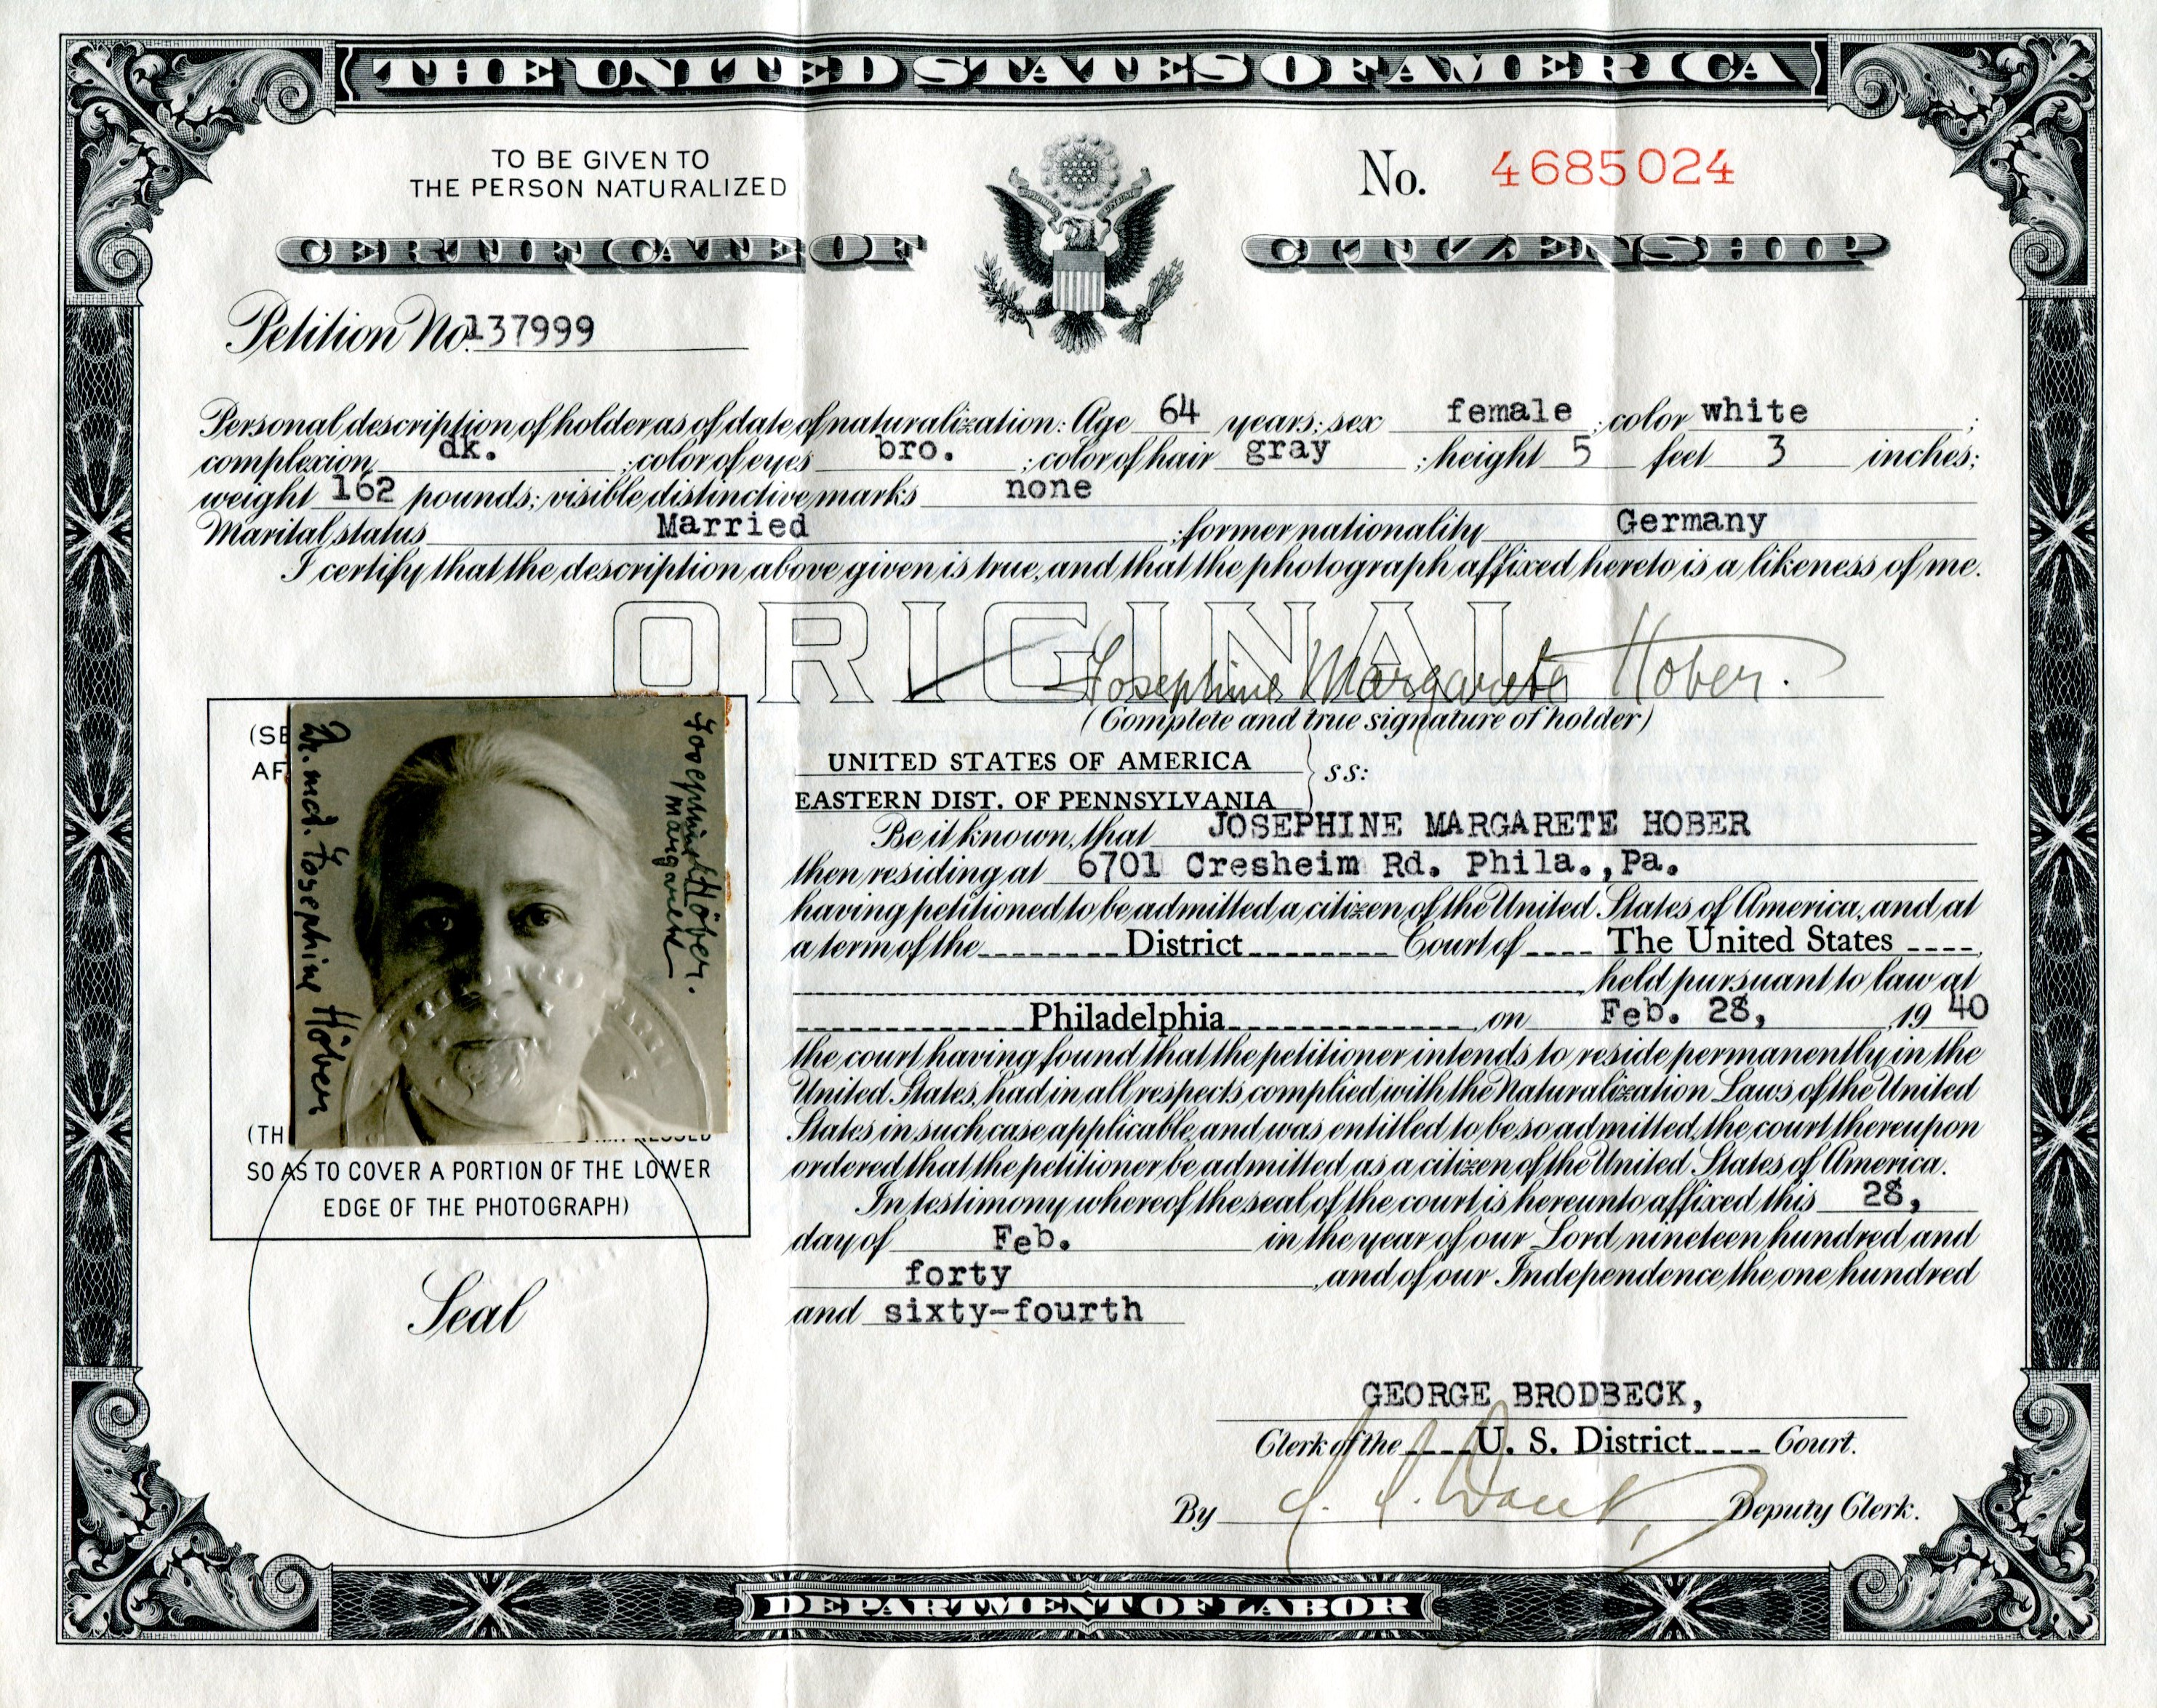 application for a search of citizenship records